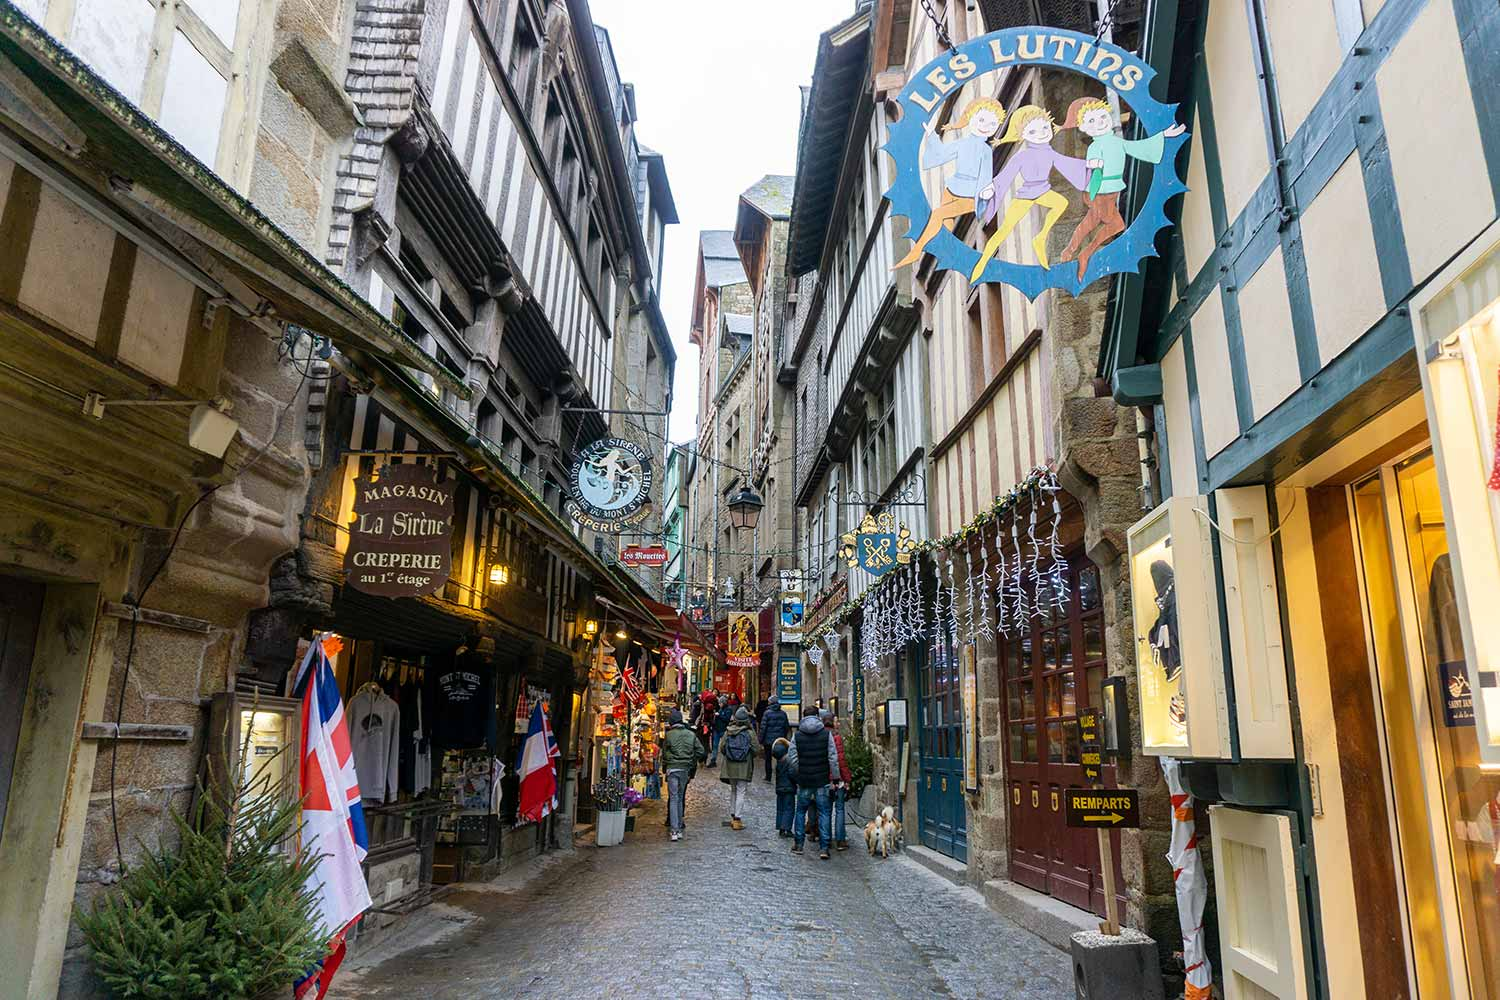 The quaint, small streets of Mont Saint Michel, France.